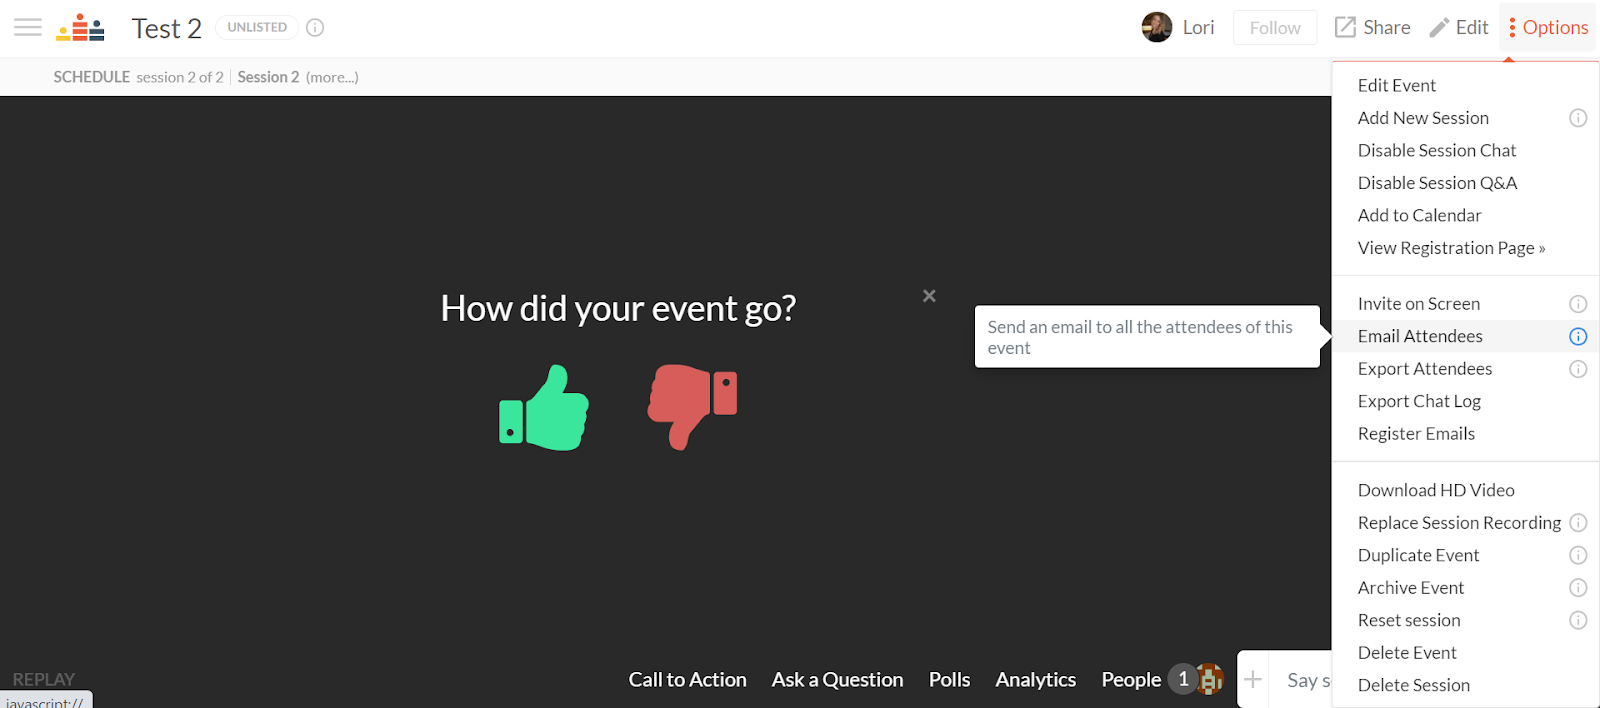 Within the options menu on the top right hand corner, there is an option to email attendees